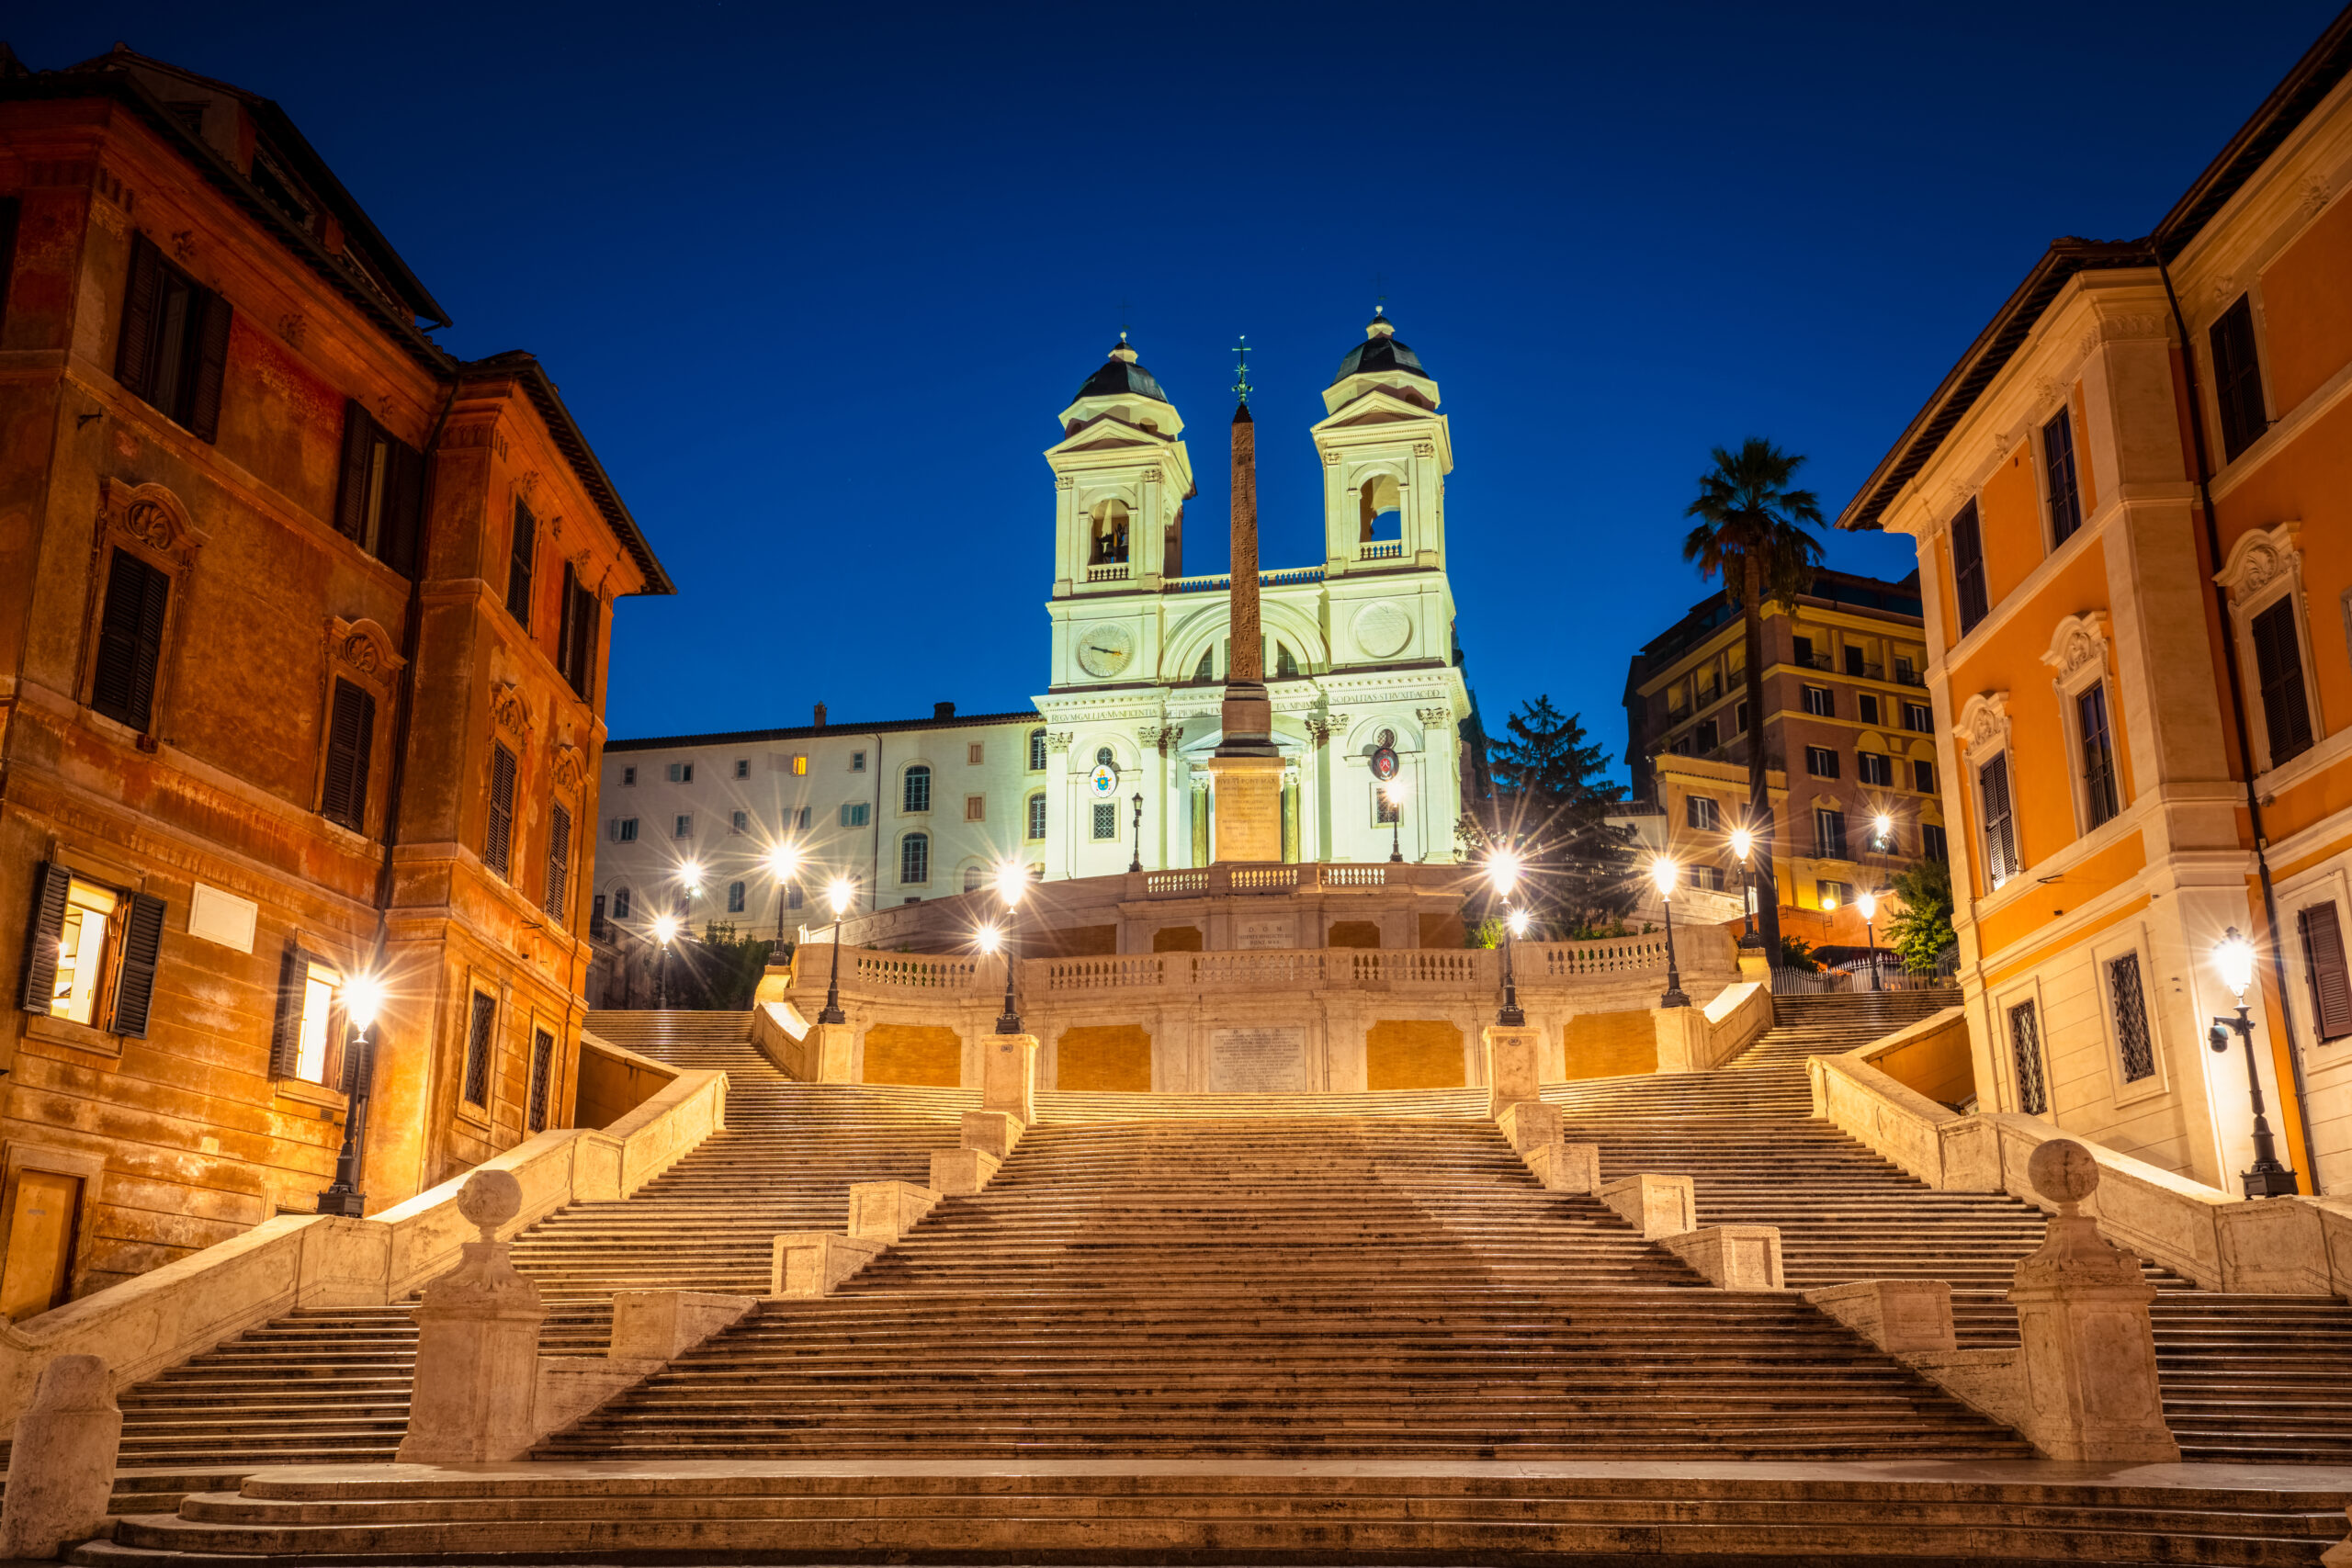 Rome Walking Tour. Evening private walking guided Tours at sunset. A Stroll To Discover The Highlights Of The Eternal City